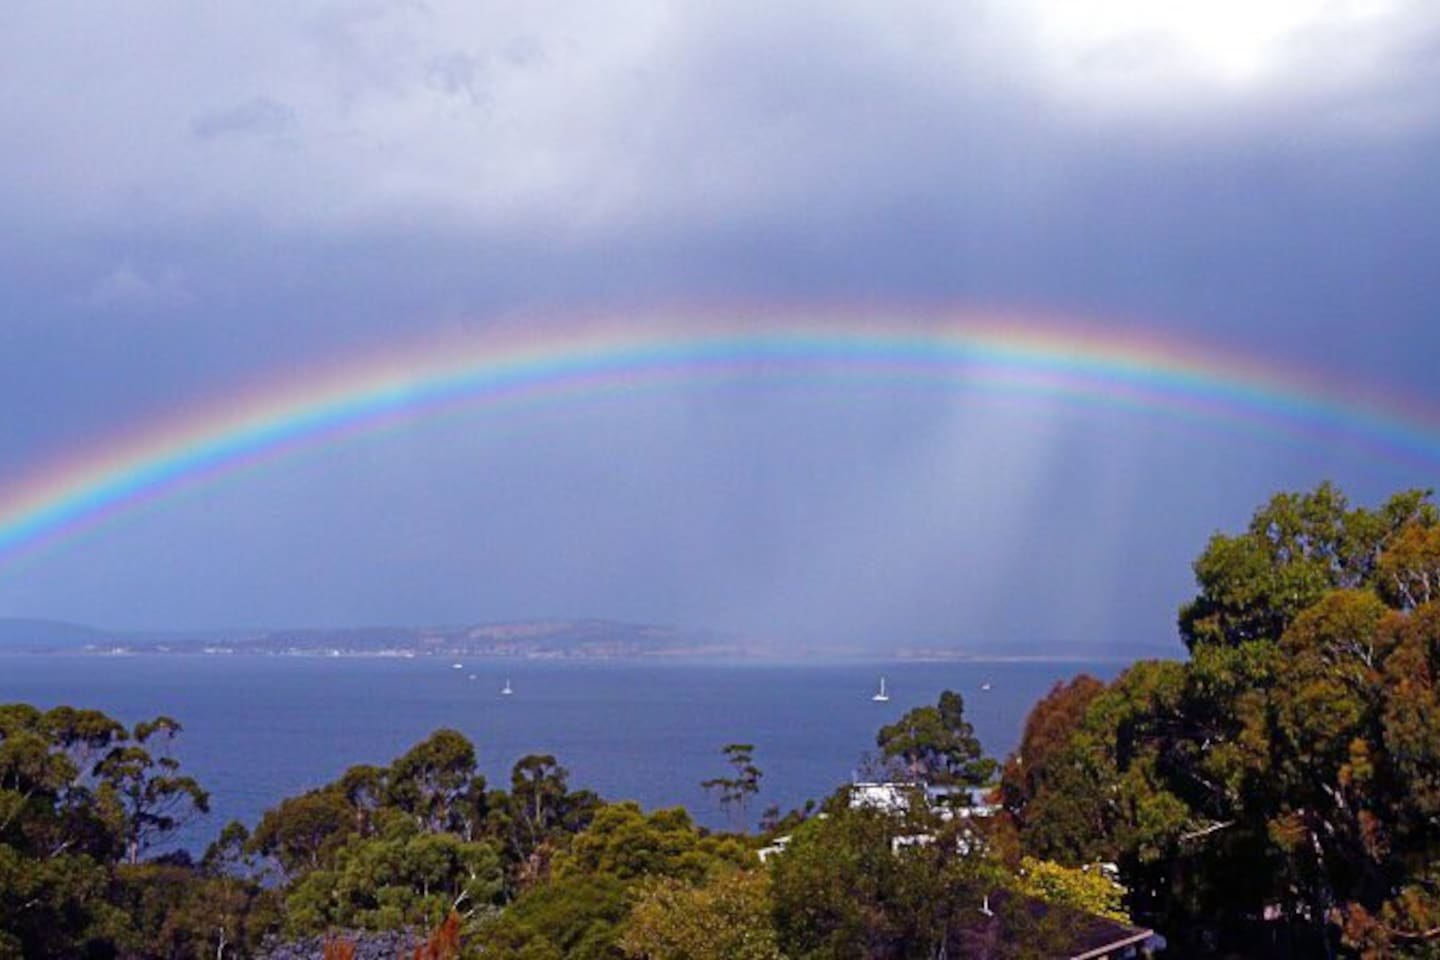 You might catch a rainbow on one of our beautiful summers day from the balcony